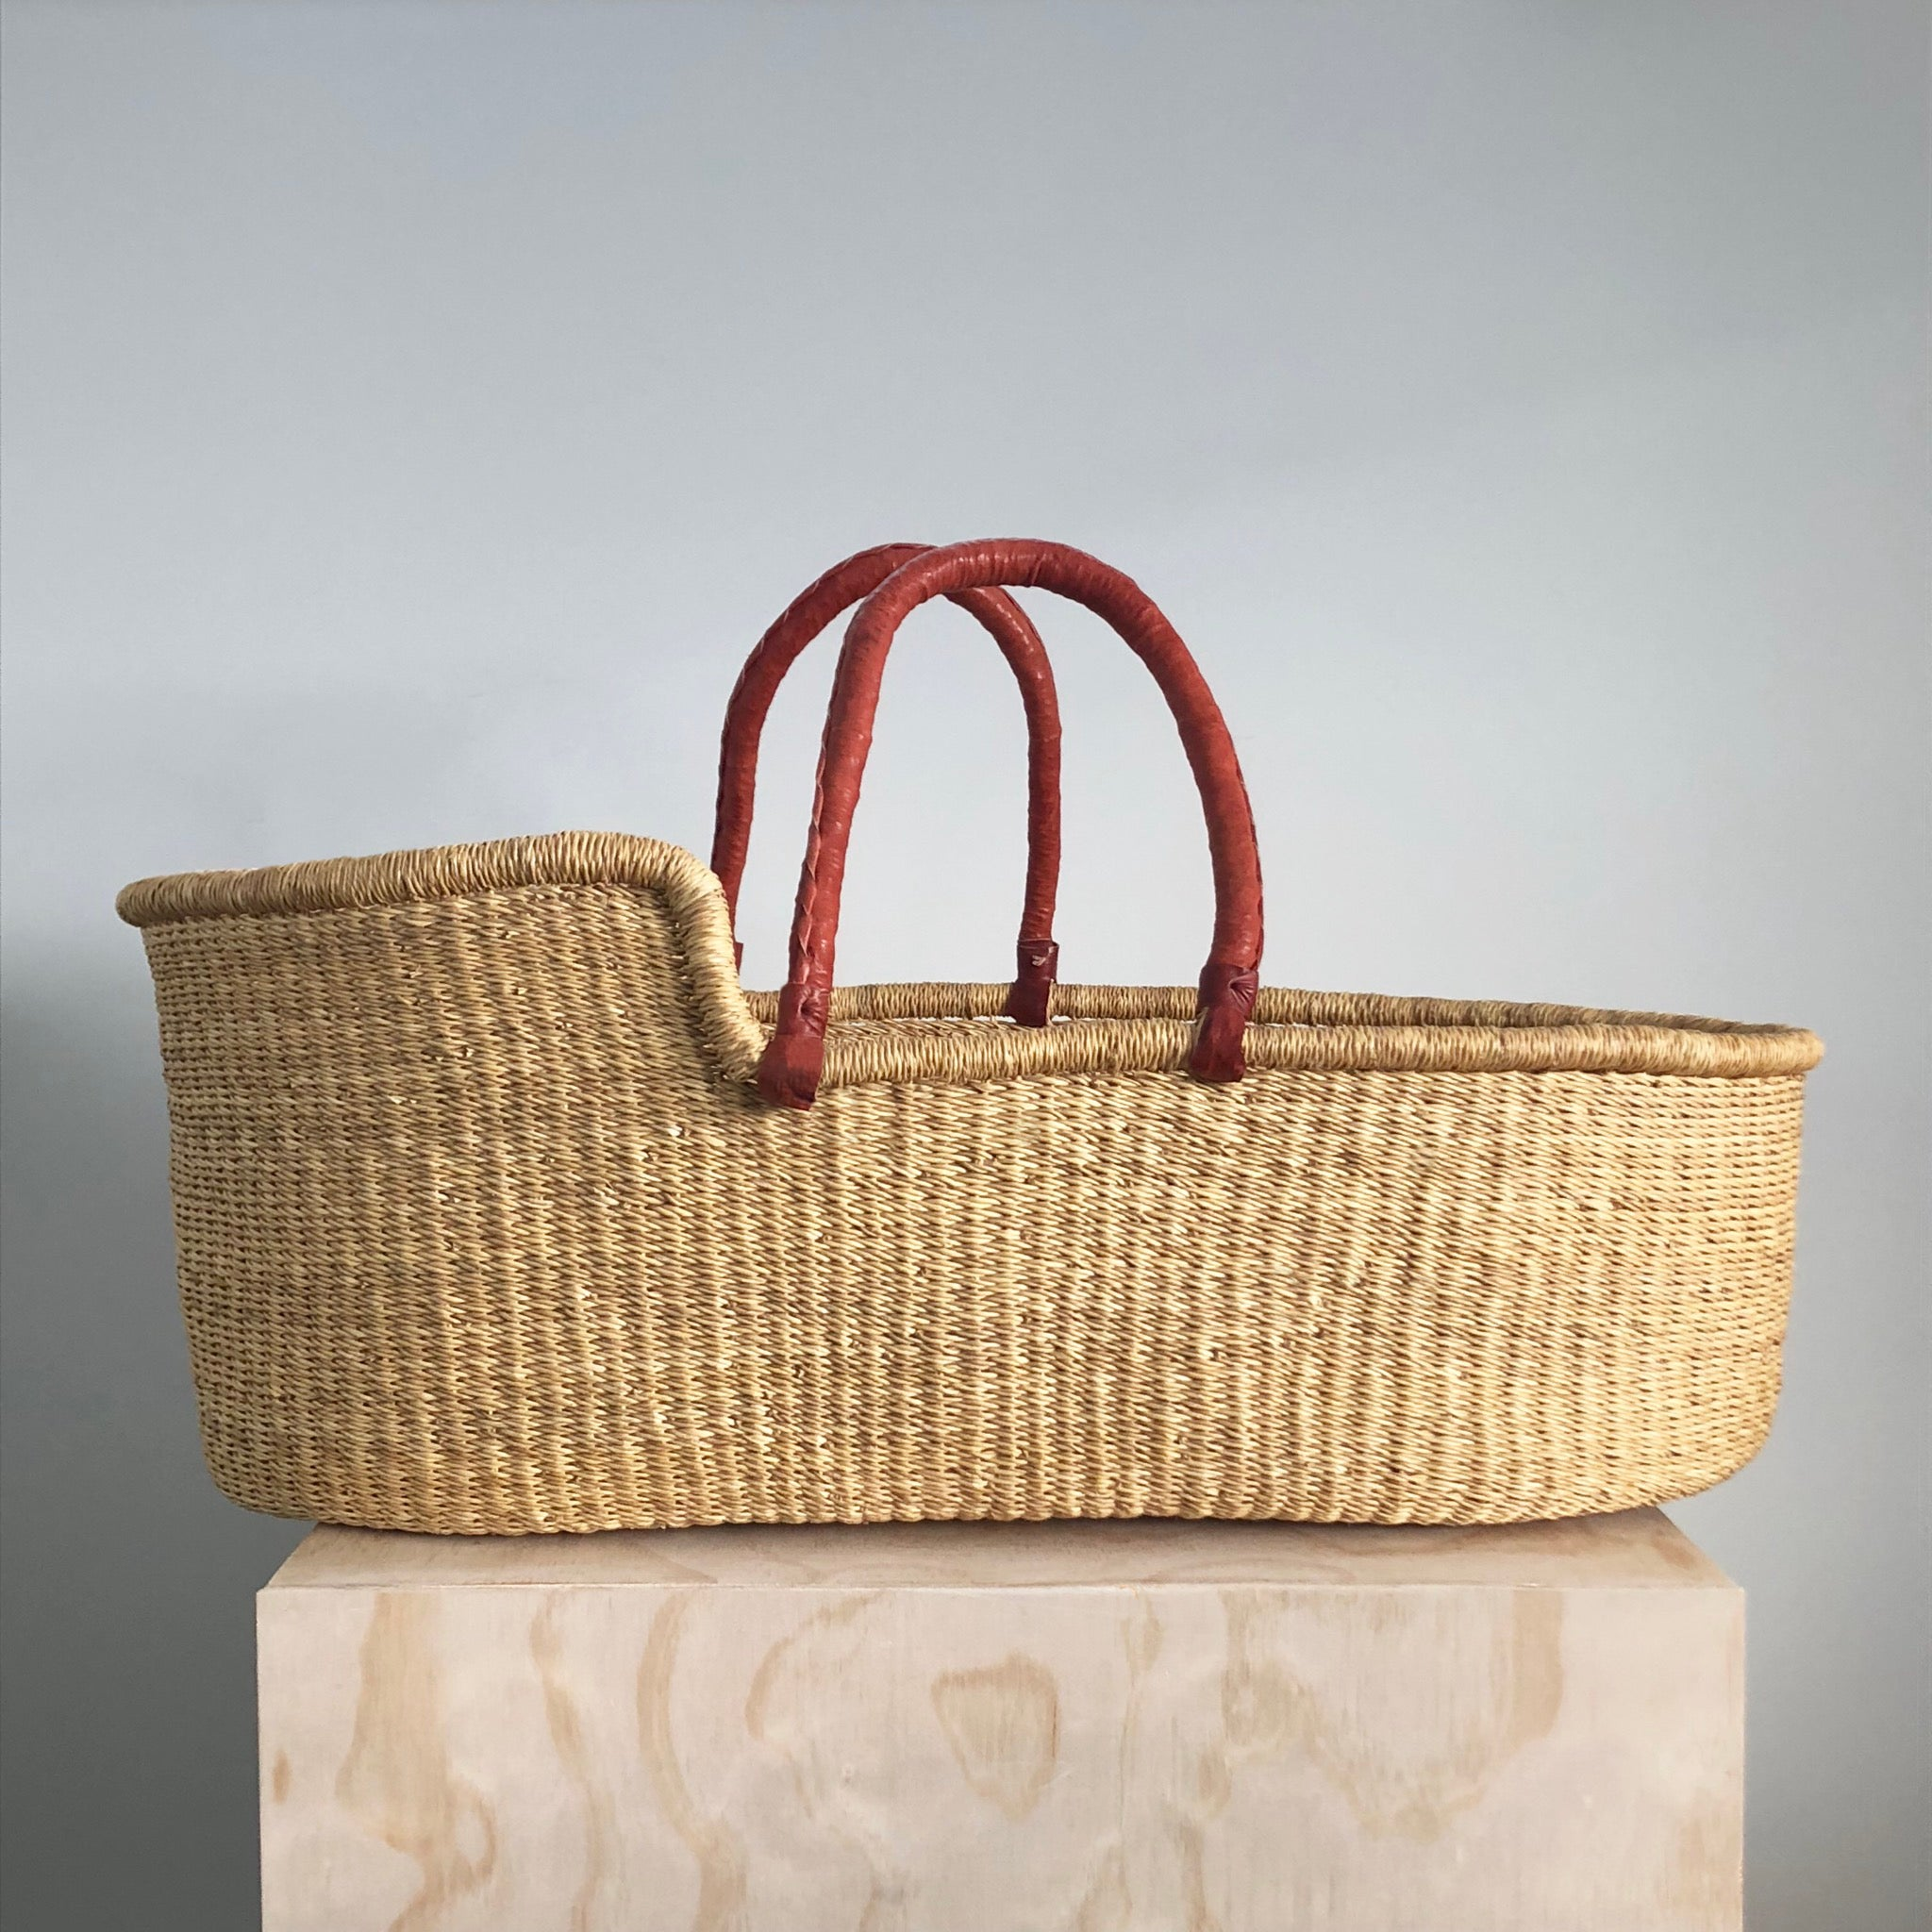 Moses Basket in natural with tan handles